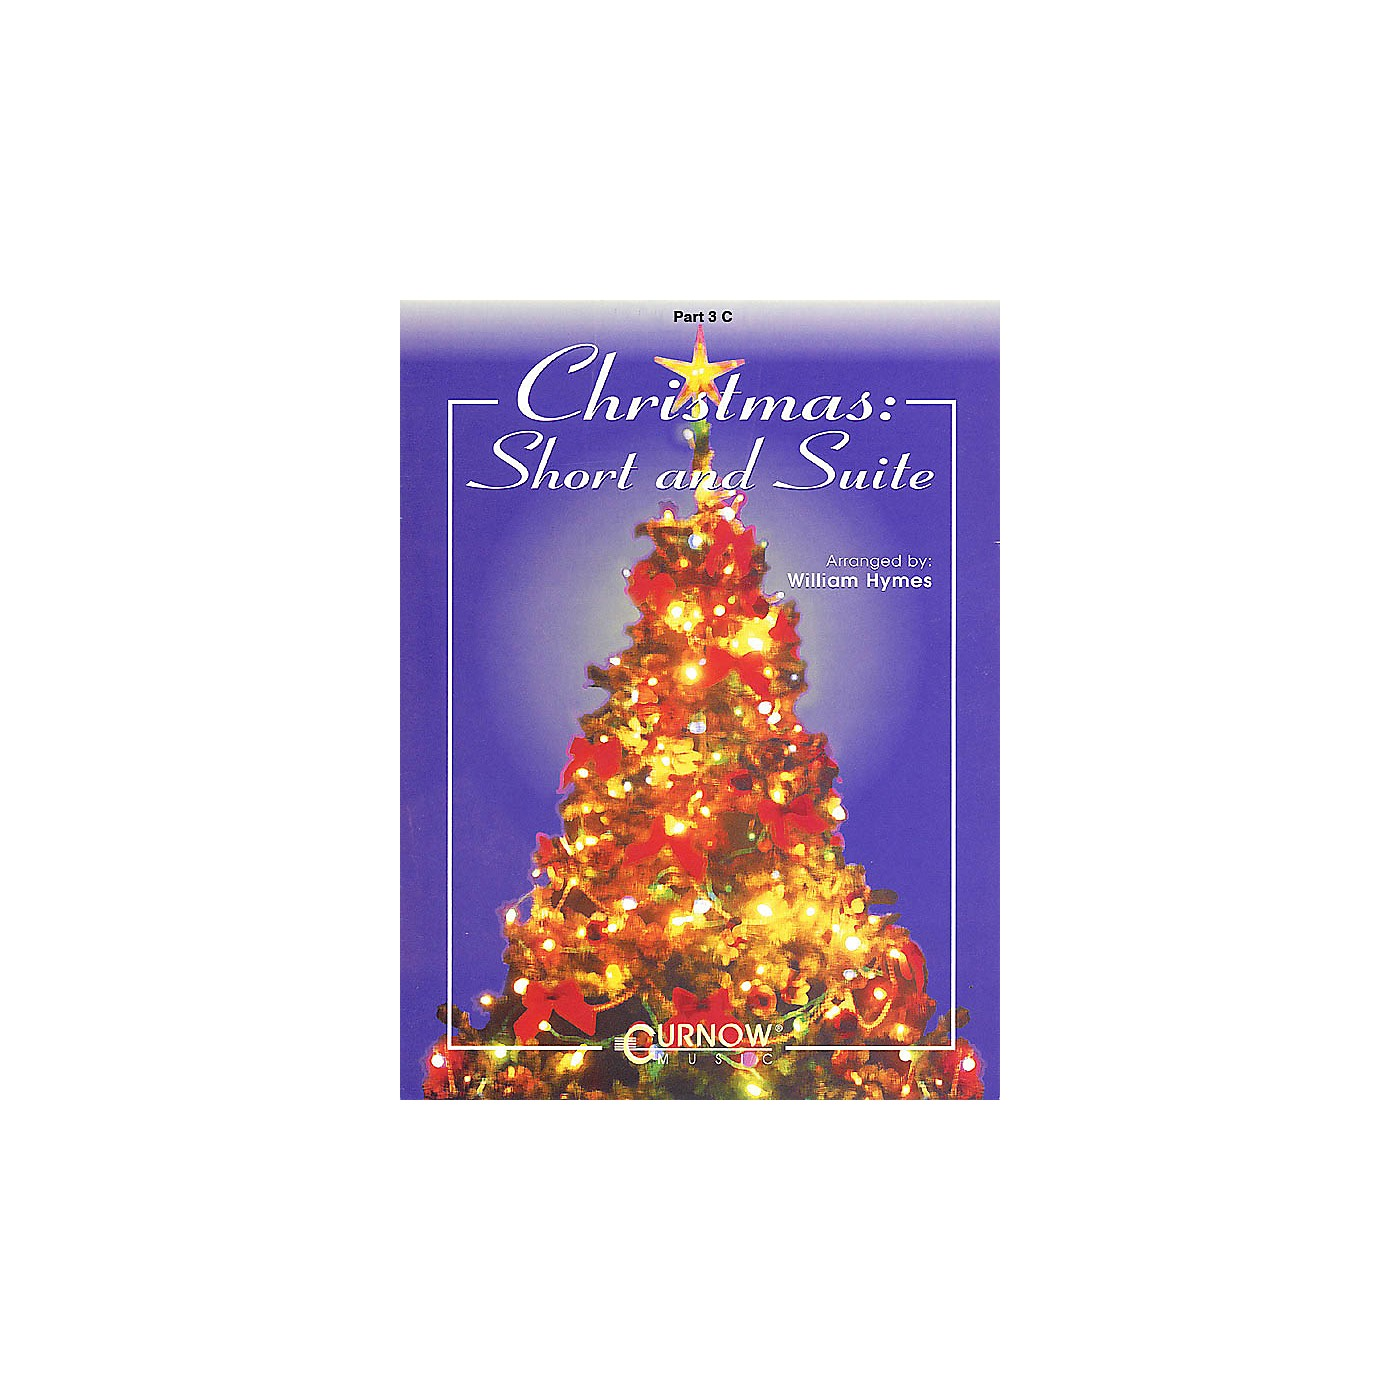 Curnow Music Christmas: Short and Suite (Part 3 - Viola) Concert Band Level 2-4 Arranged by William Himes thumbnail